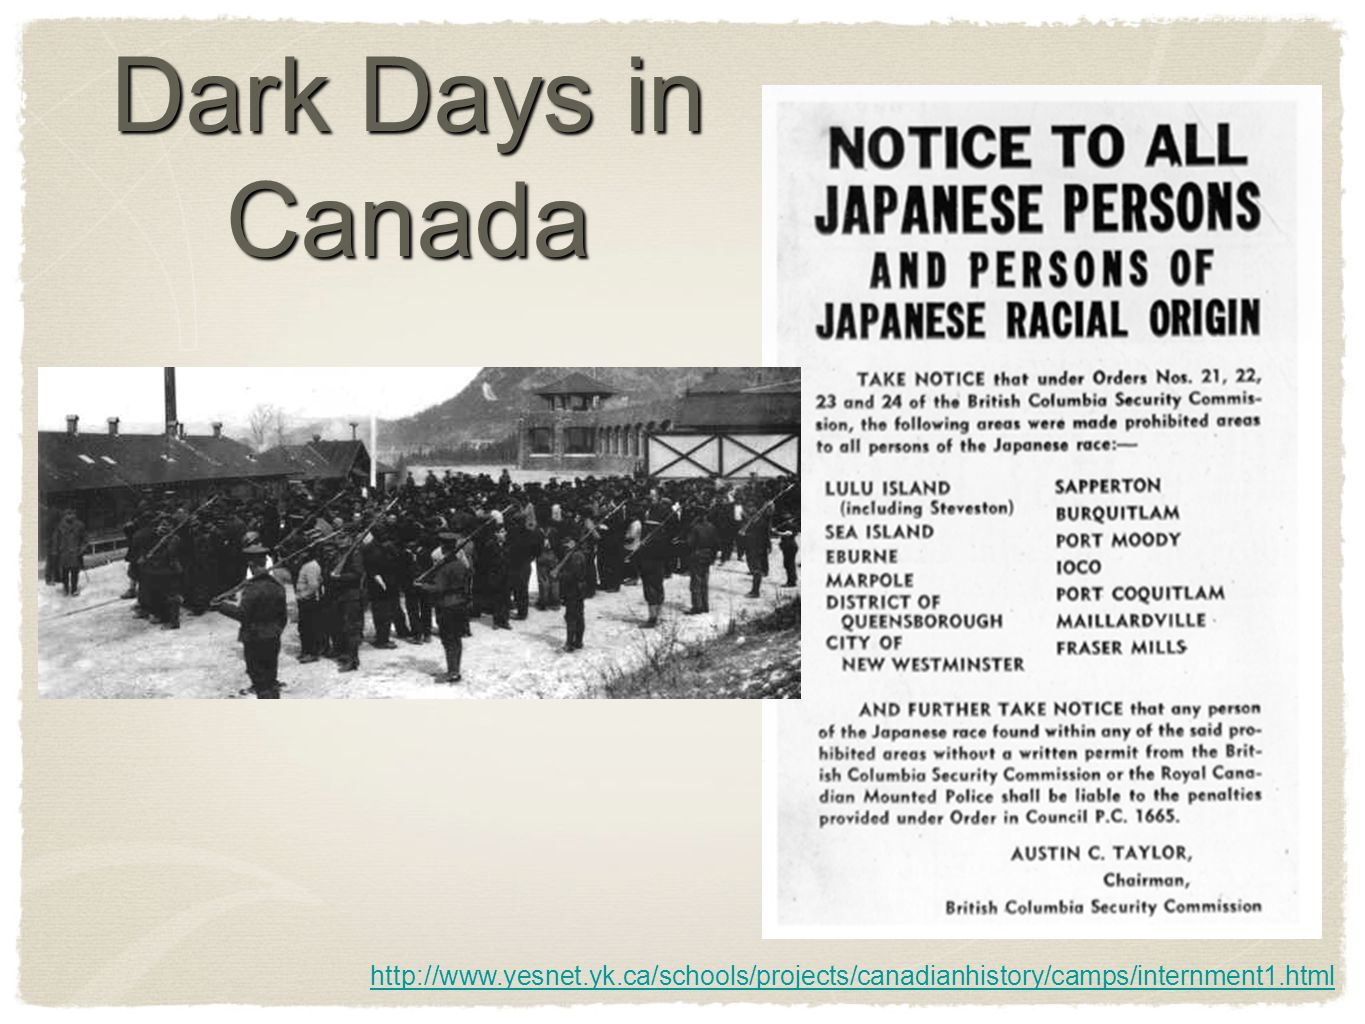 Dark Days in Canada http://www.yesnet.yk.ca/schools/projects/canadianhistory/camps/internment1.html